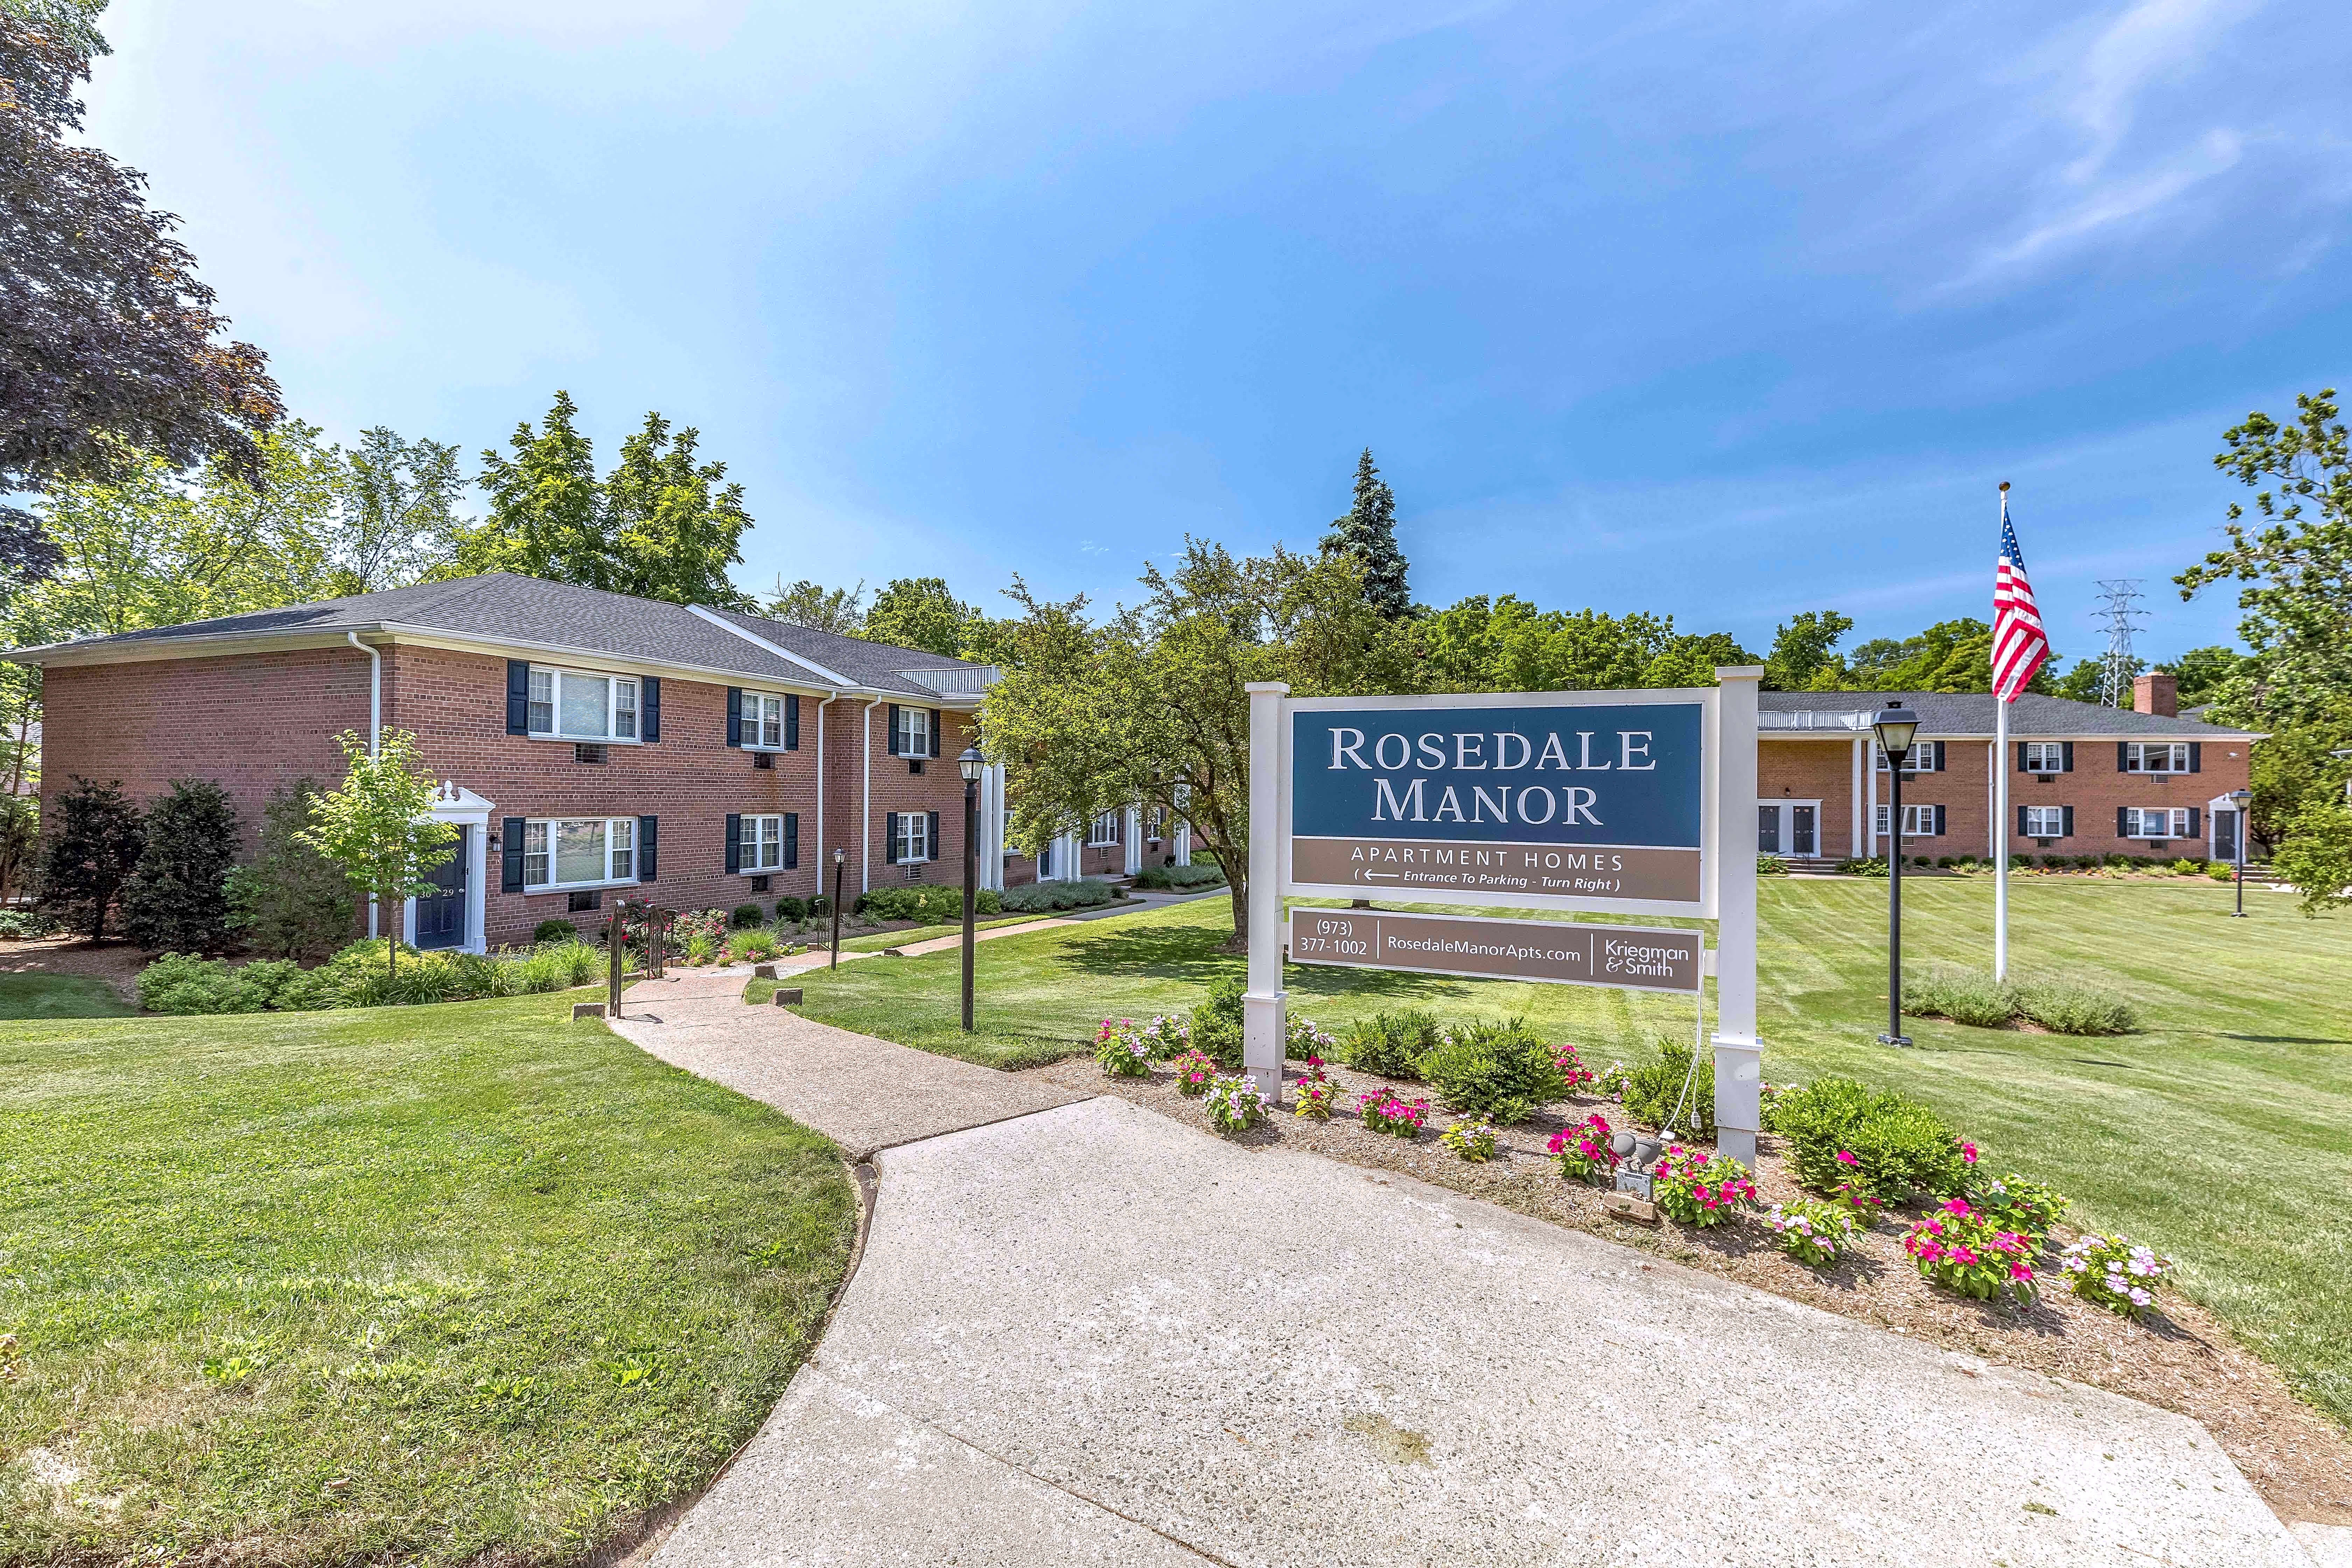 Apartments Near Drew Rosedale Manor for Drew University Students in Madison, NJ